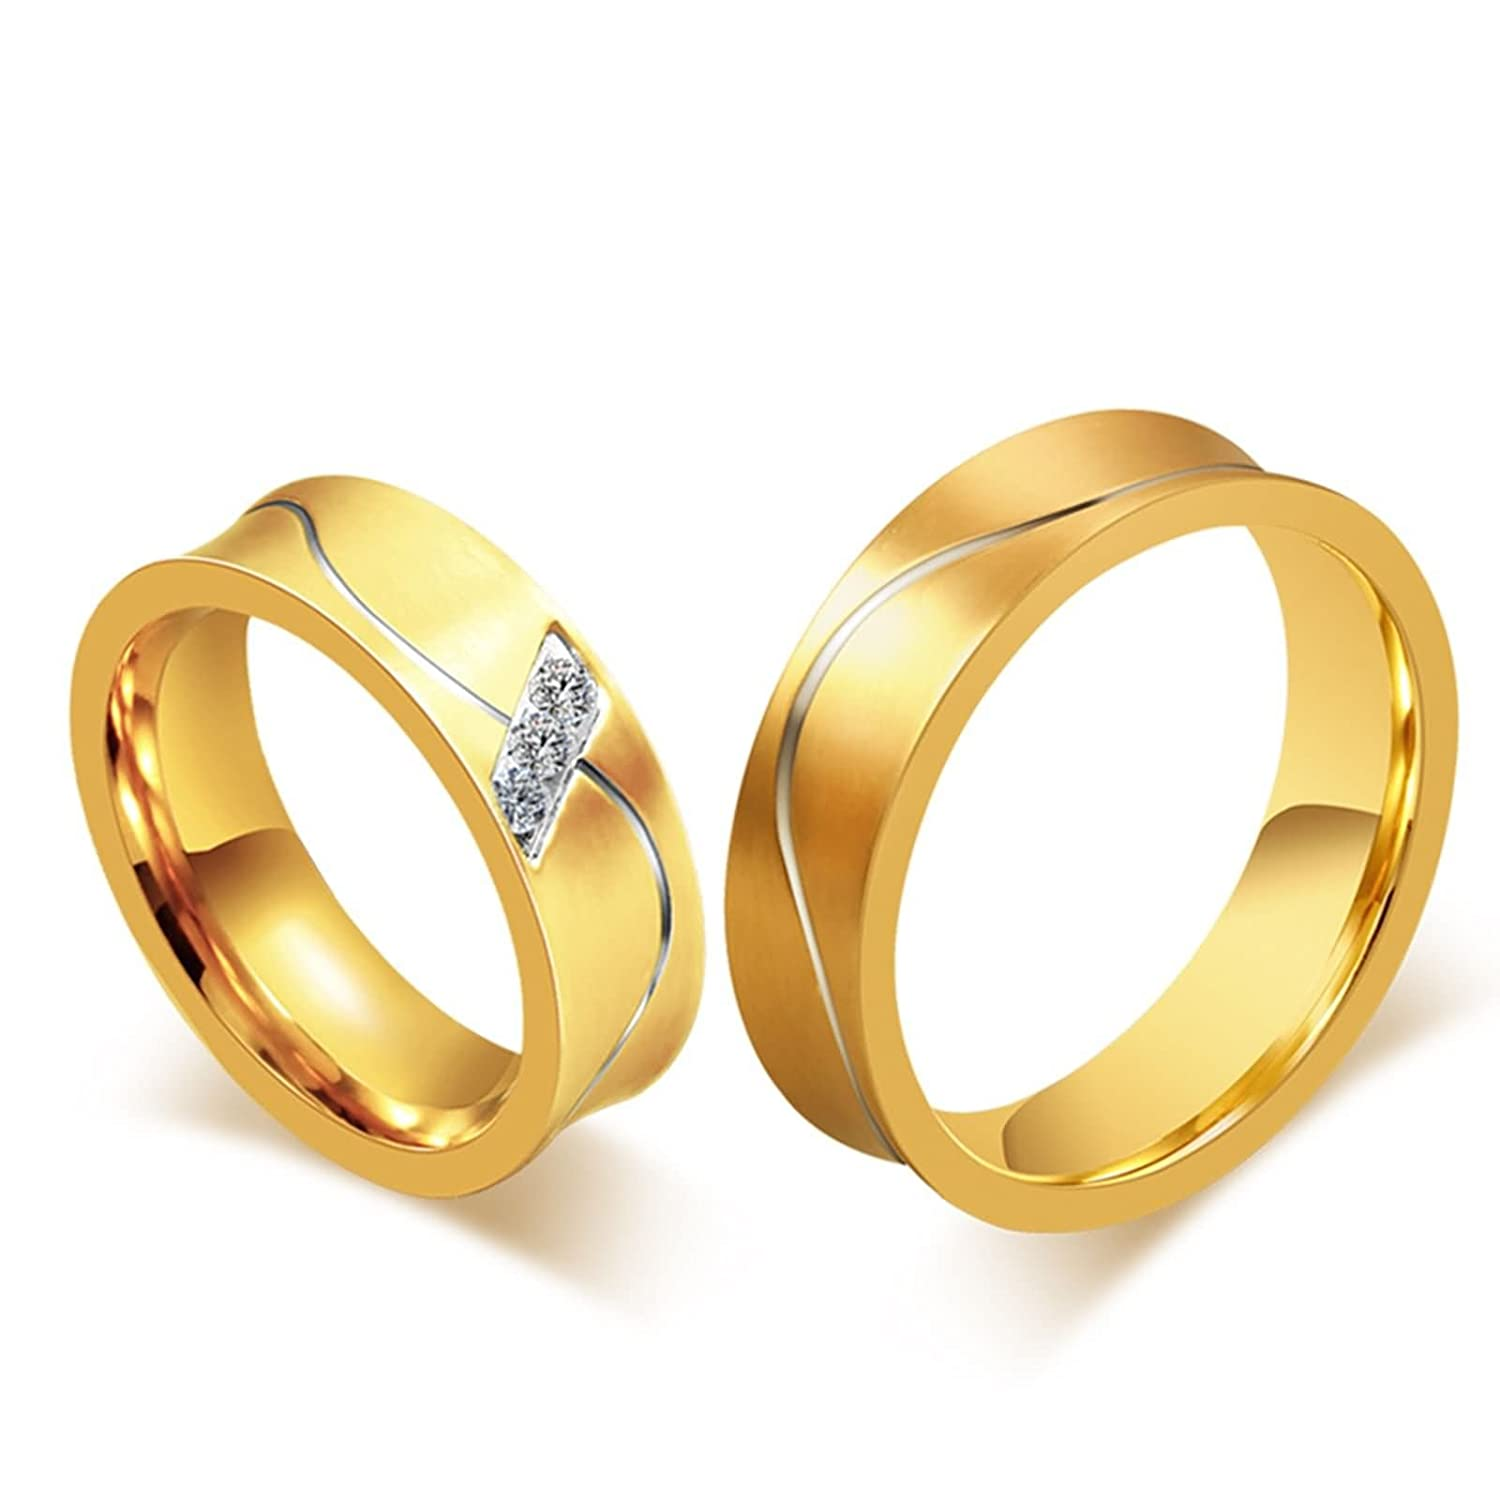 ANAZOZ Couple Ring Sets 6MM Stainless Steel Gold Plated Cubic Zirconia Wedding Band Rings